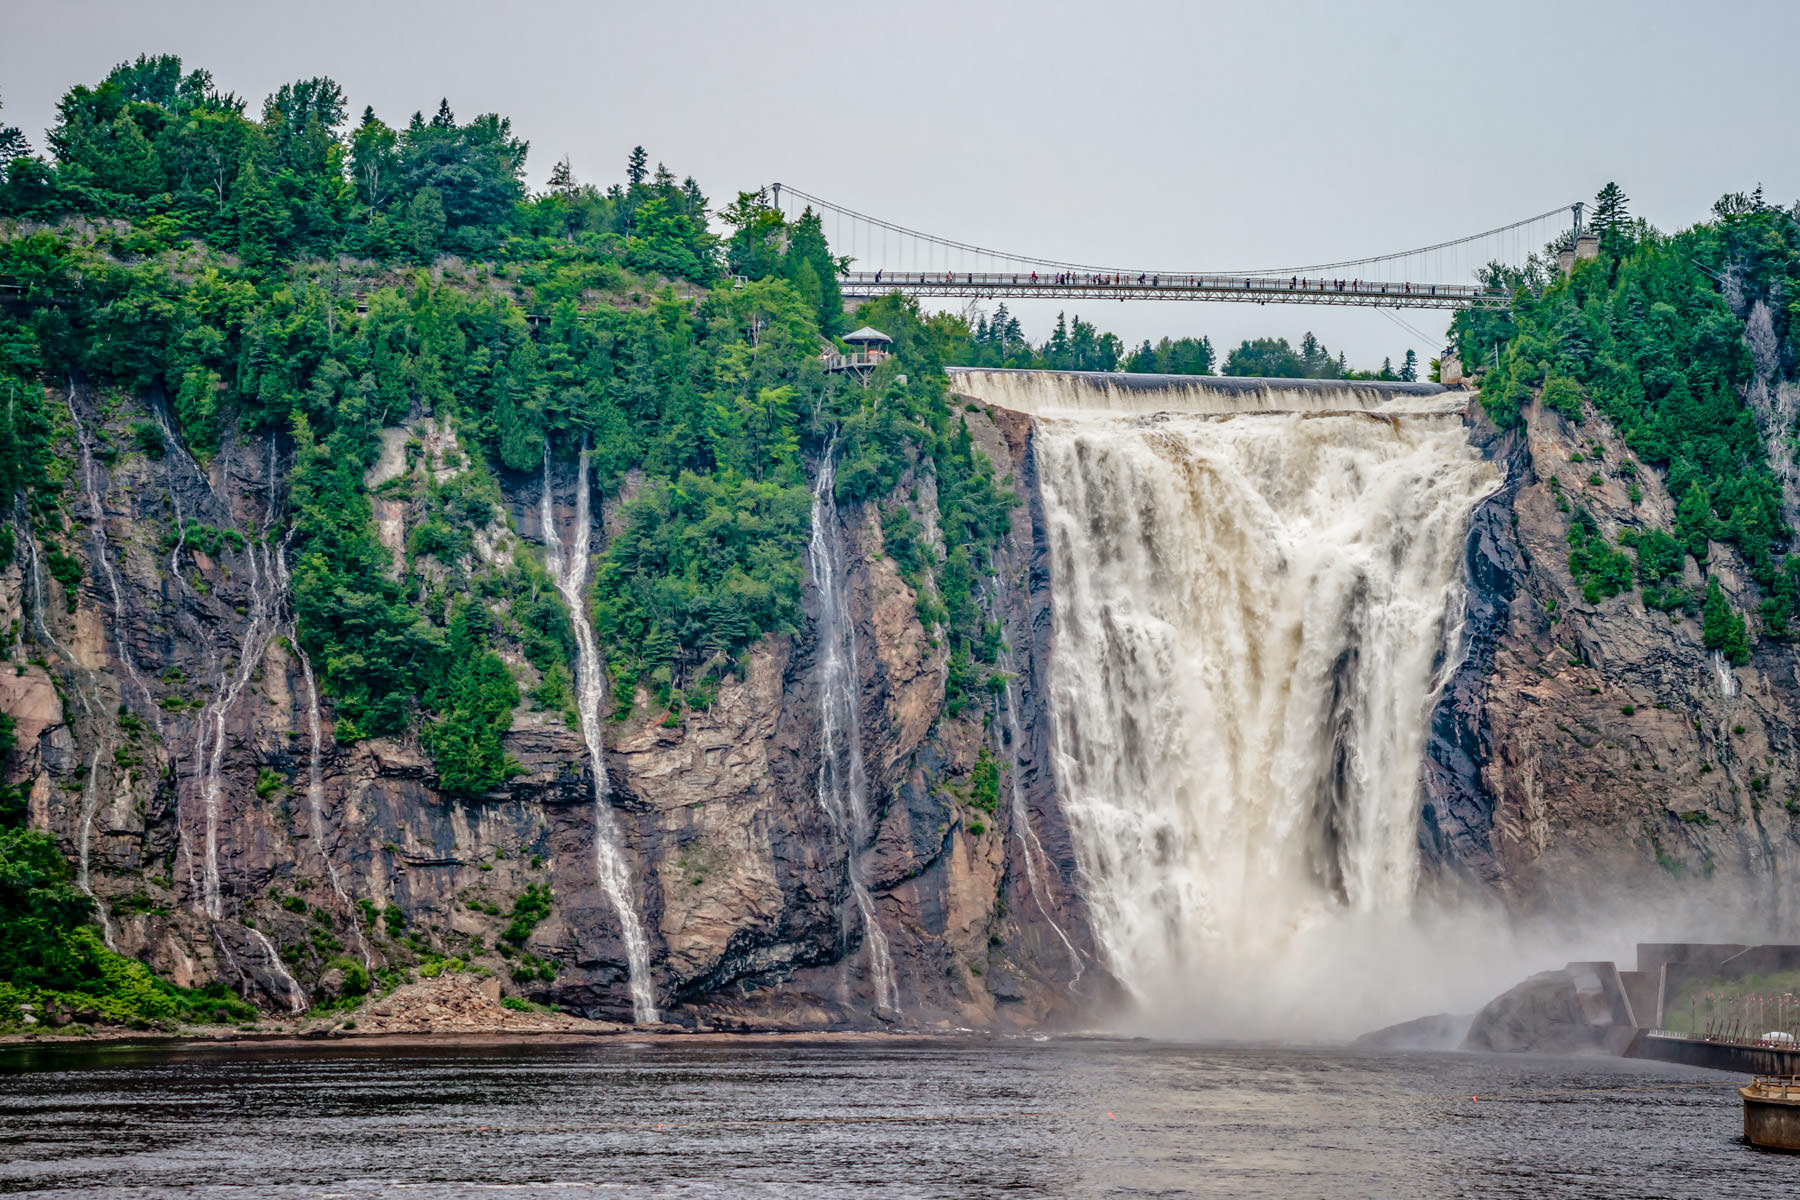 Muddy water from the Montmorency River tumbles over Montmorency Falls just outside of Québec City, Canada.